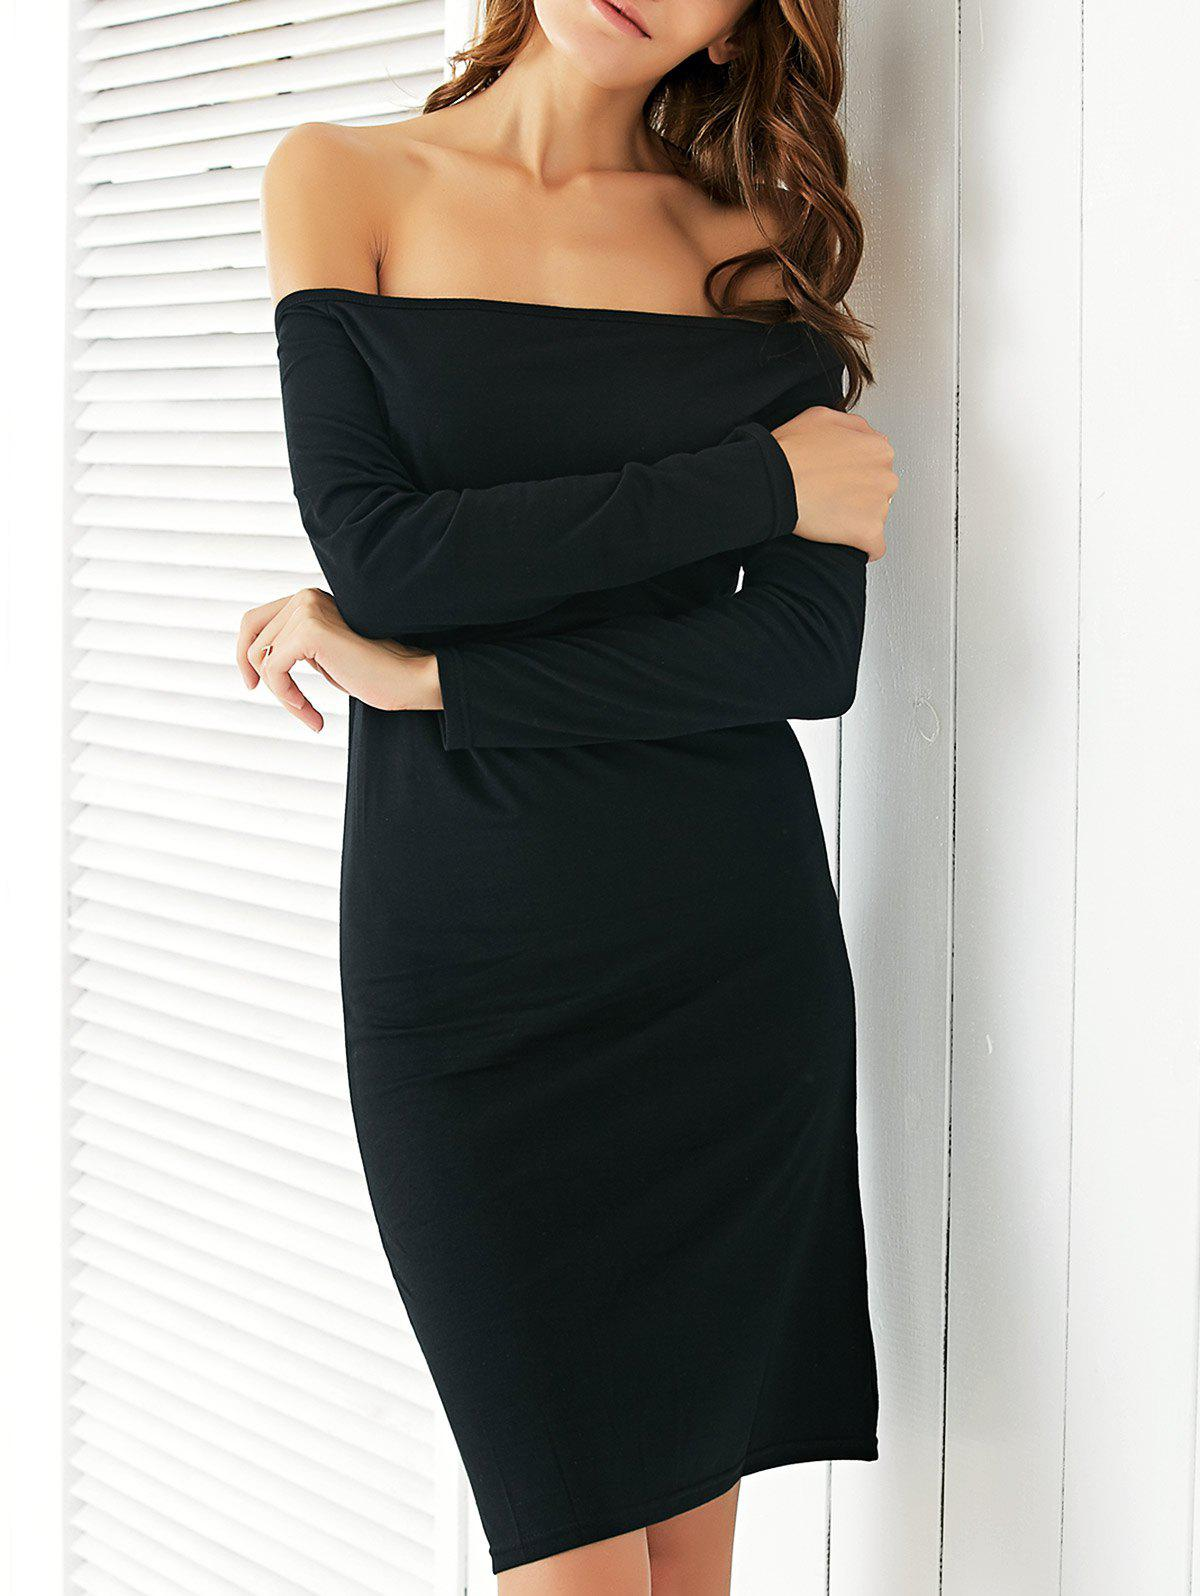 Chic Off The Shoulder Black Slimming Women's Dress - BLACK XL